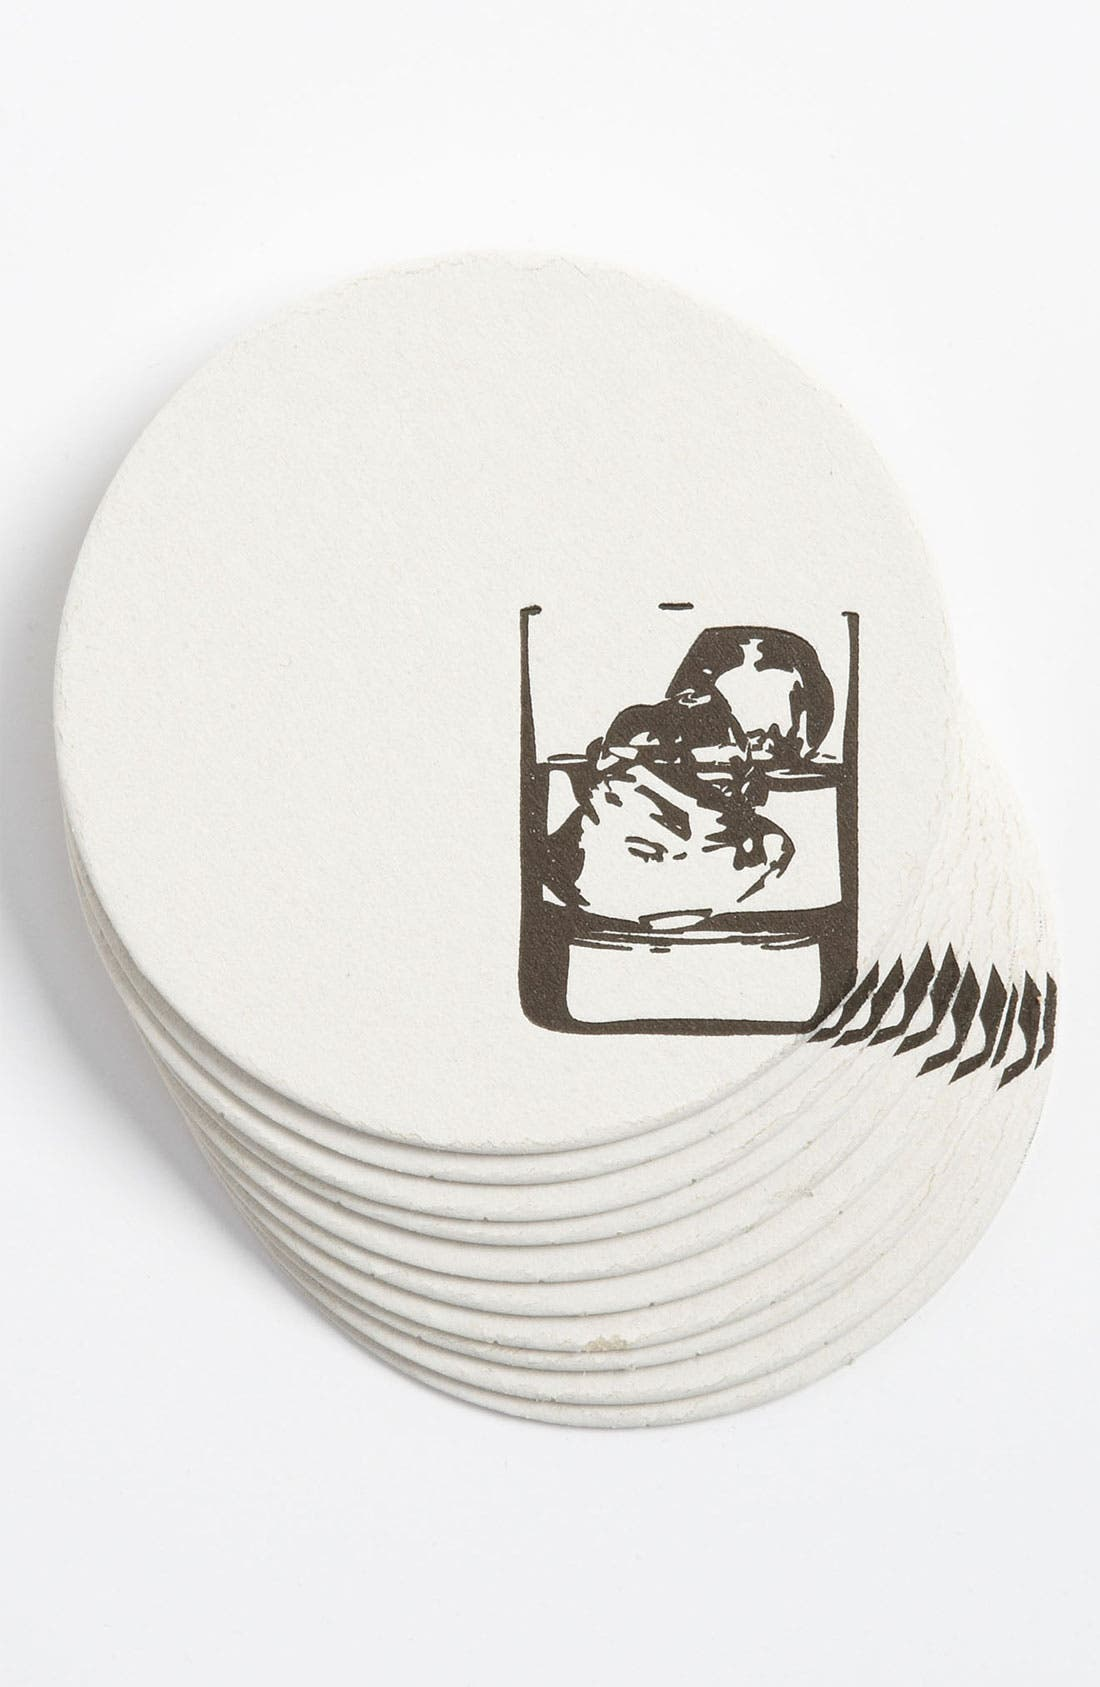 Alternate Image 1 Selected - 'Cocktail Glass' Letterpress Coasters (Set of 10)